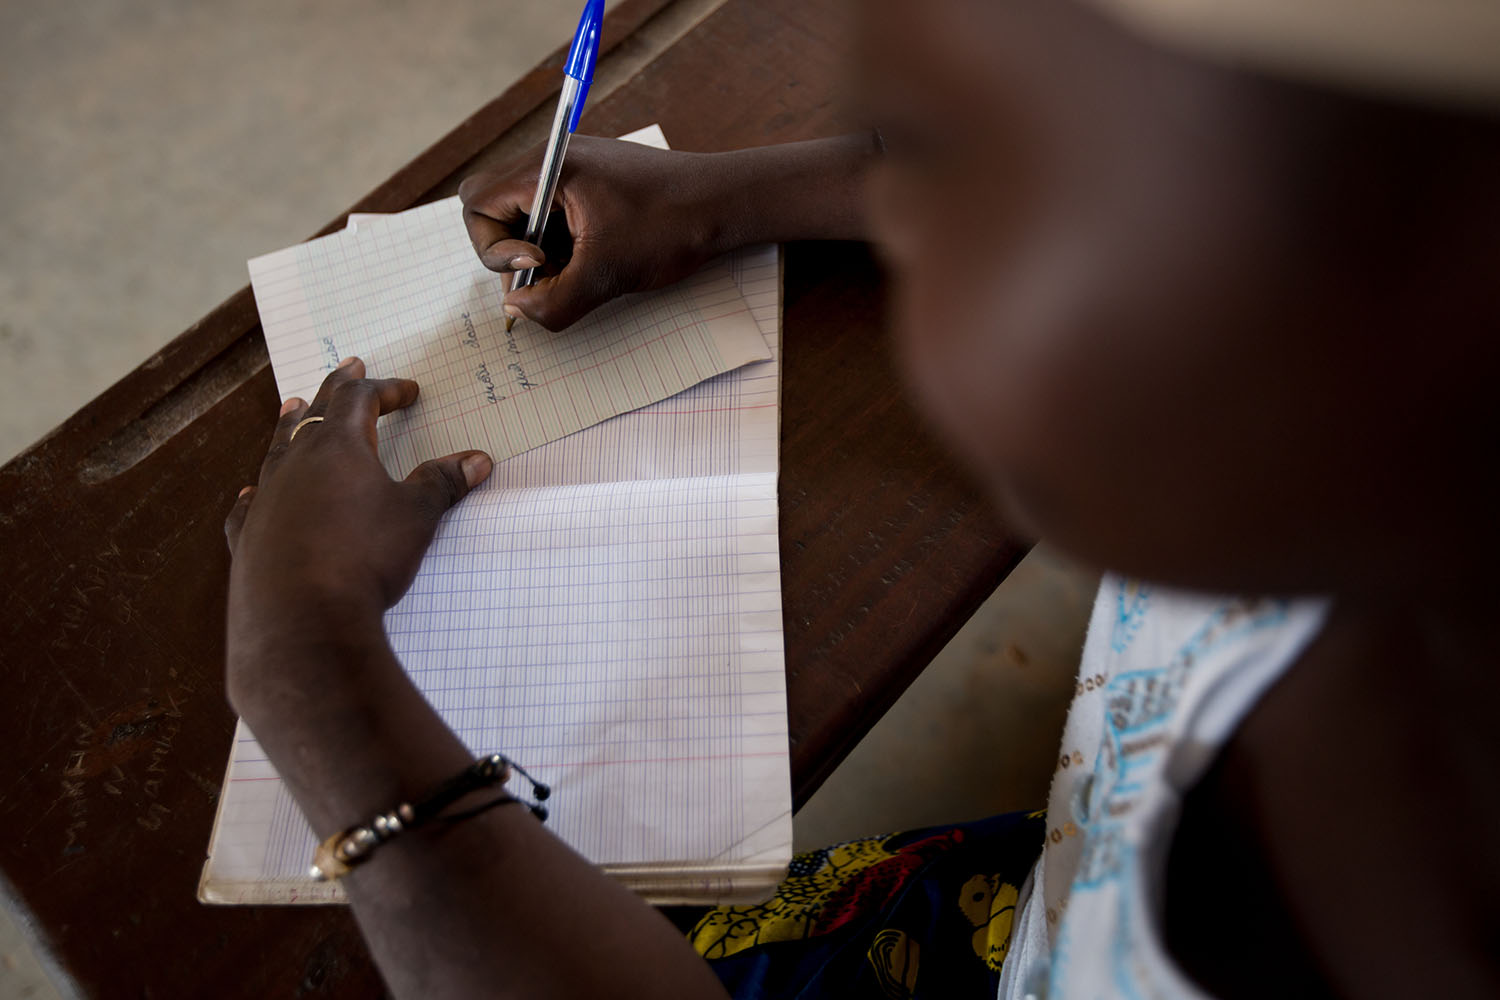 UNICEF is facilitaes adult literacy programs, where illiterate parents are taught to read and to write so that they can assist their children at home with school work. This helps the children with their grades and constantly reinforces to the parent how v